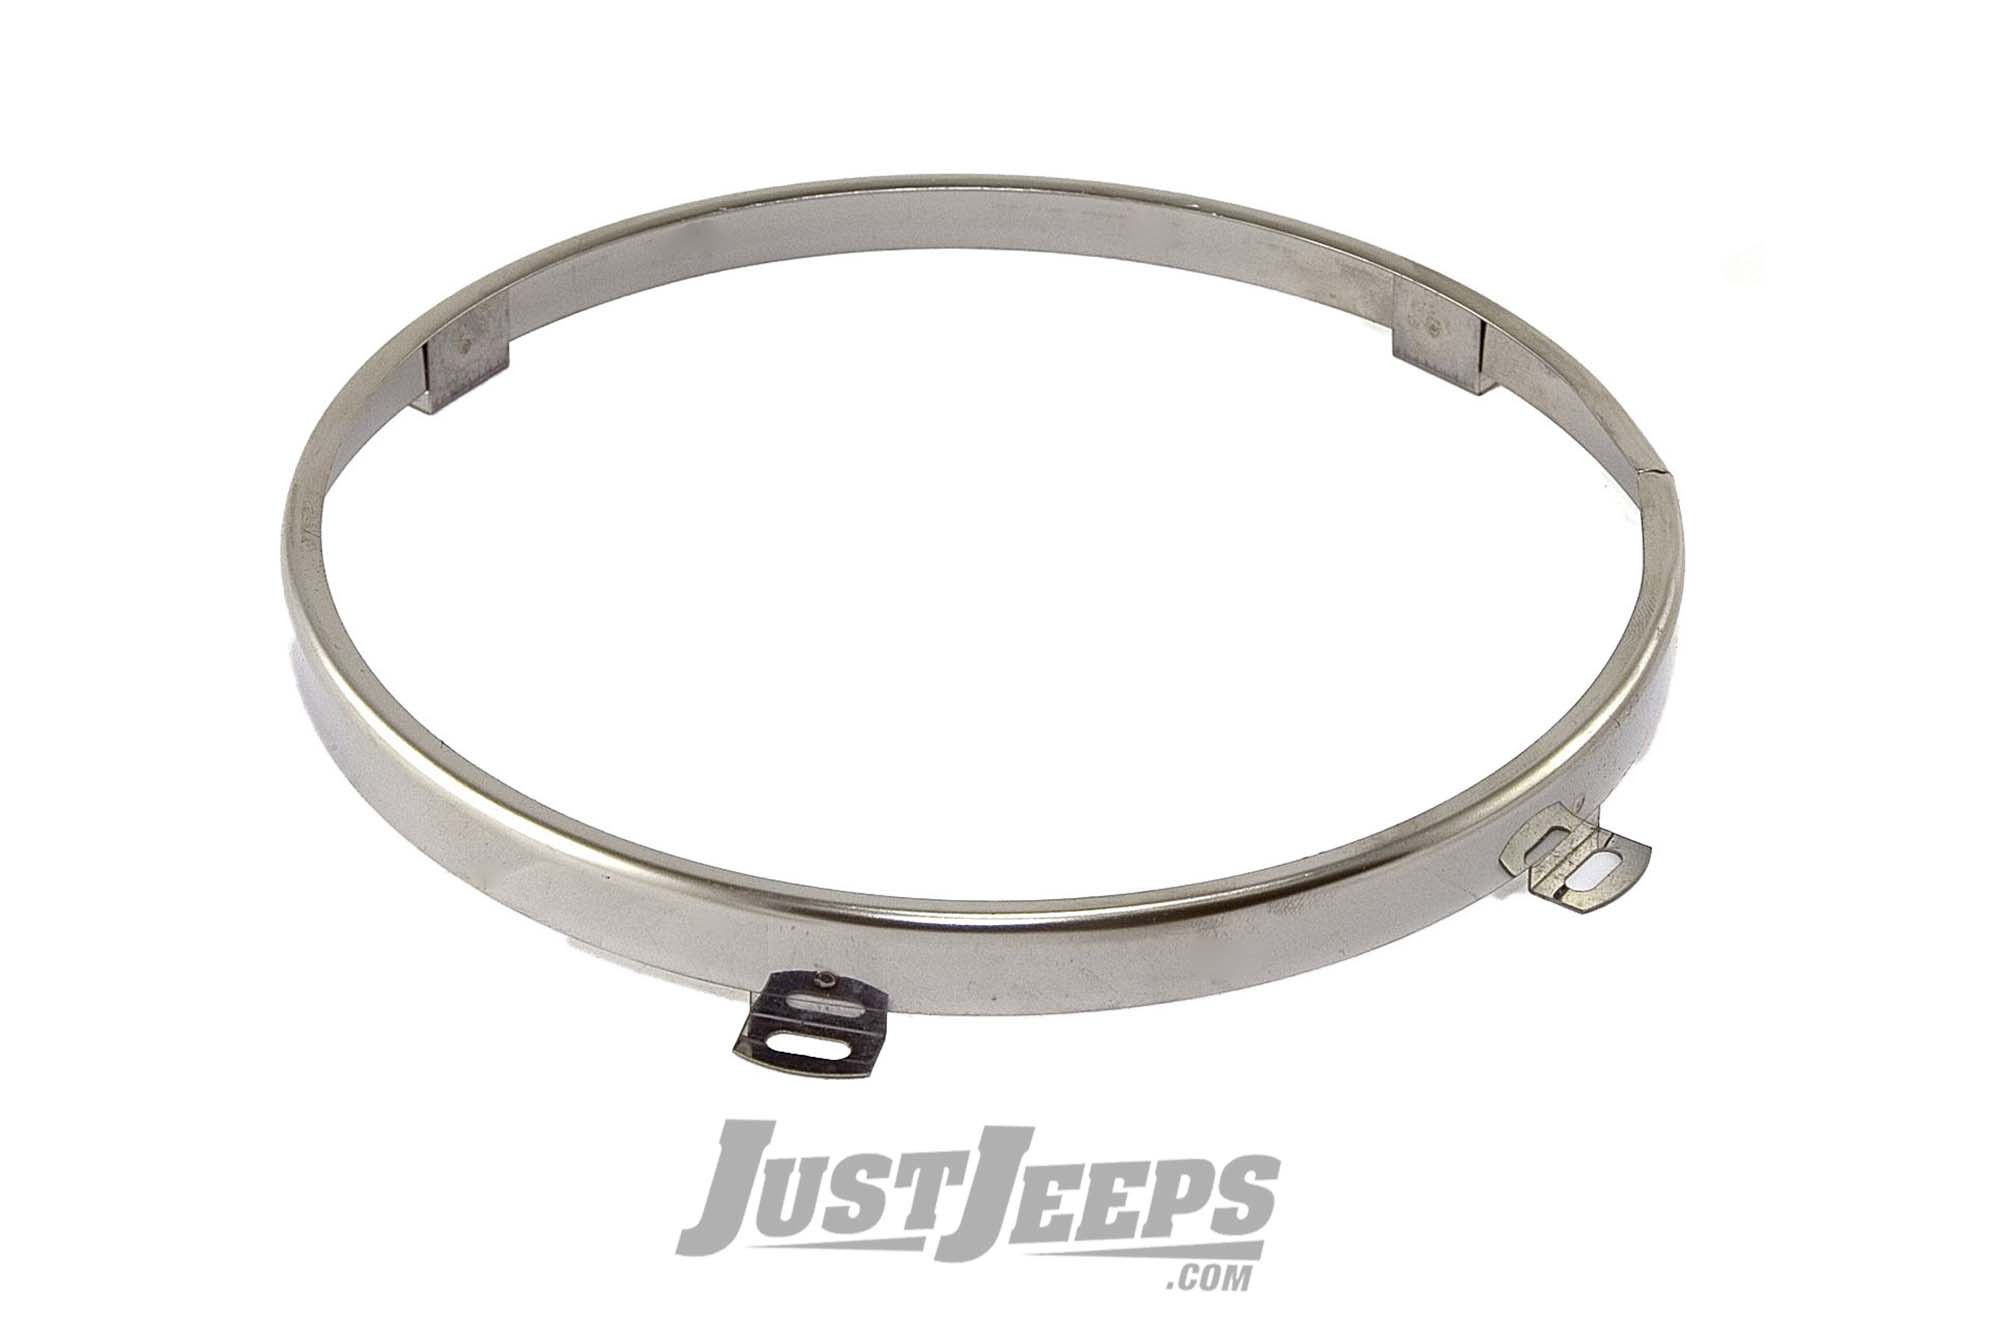 Omix-ADA Headlight Retaining Ring For 1997-06 Jeep Wrangler TJ & TJ Unlimited Models